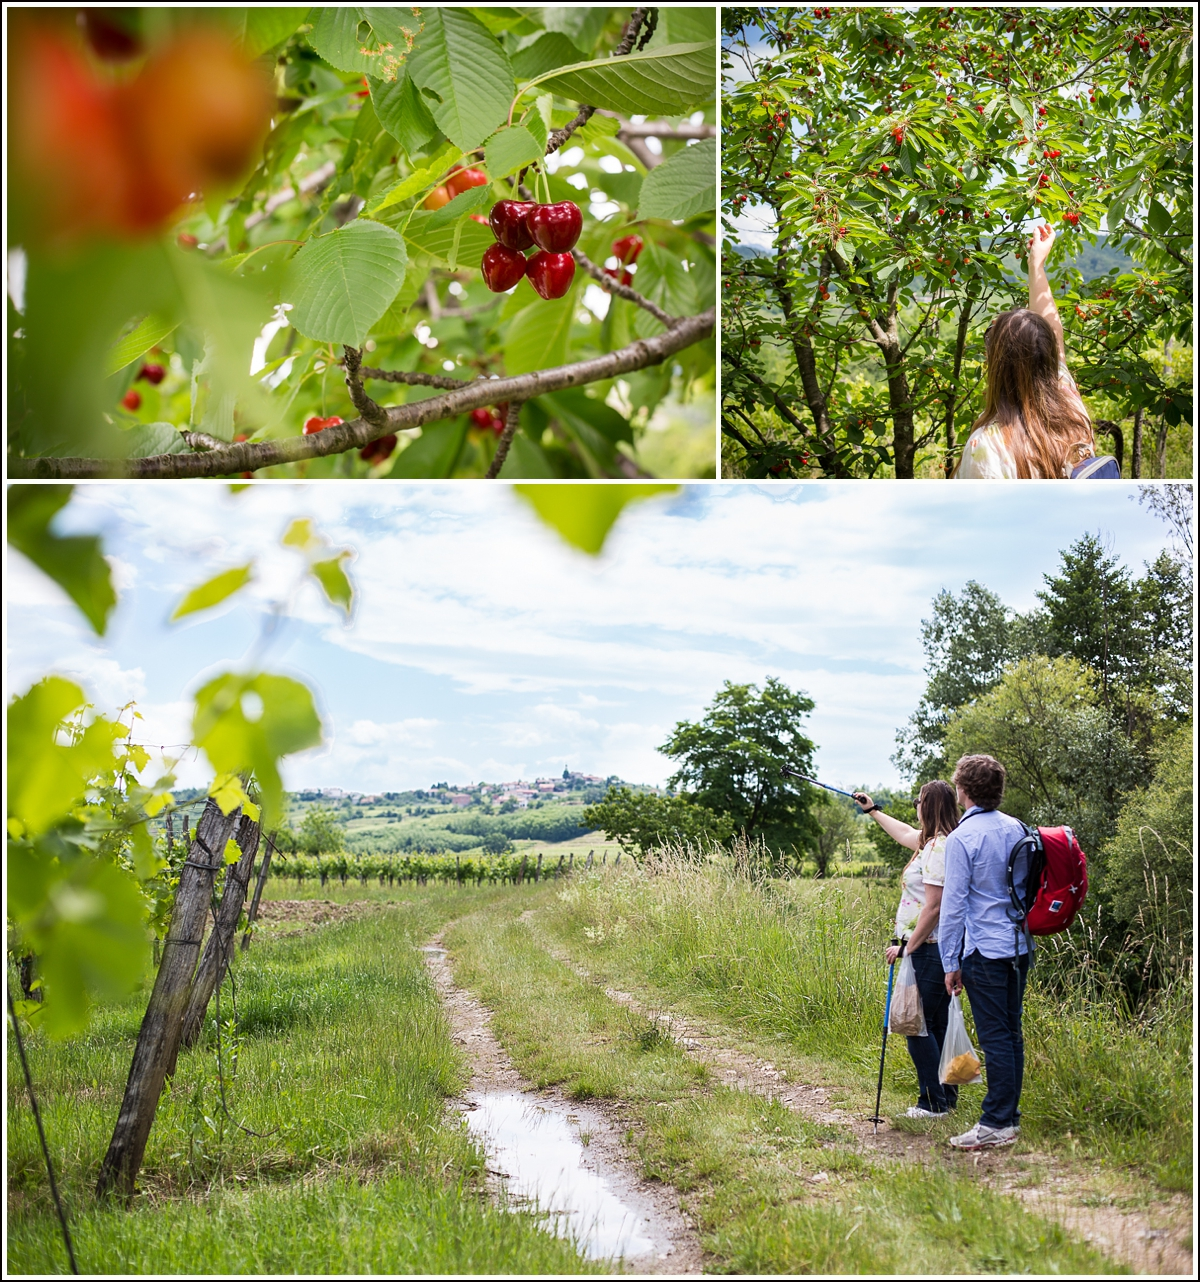 Brda-Slovenia-cherry-picking